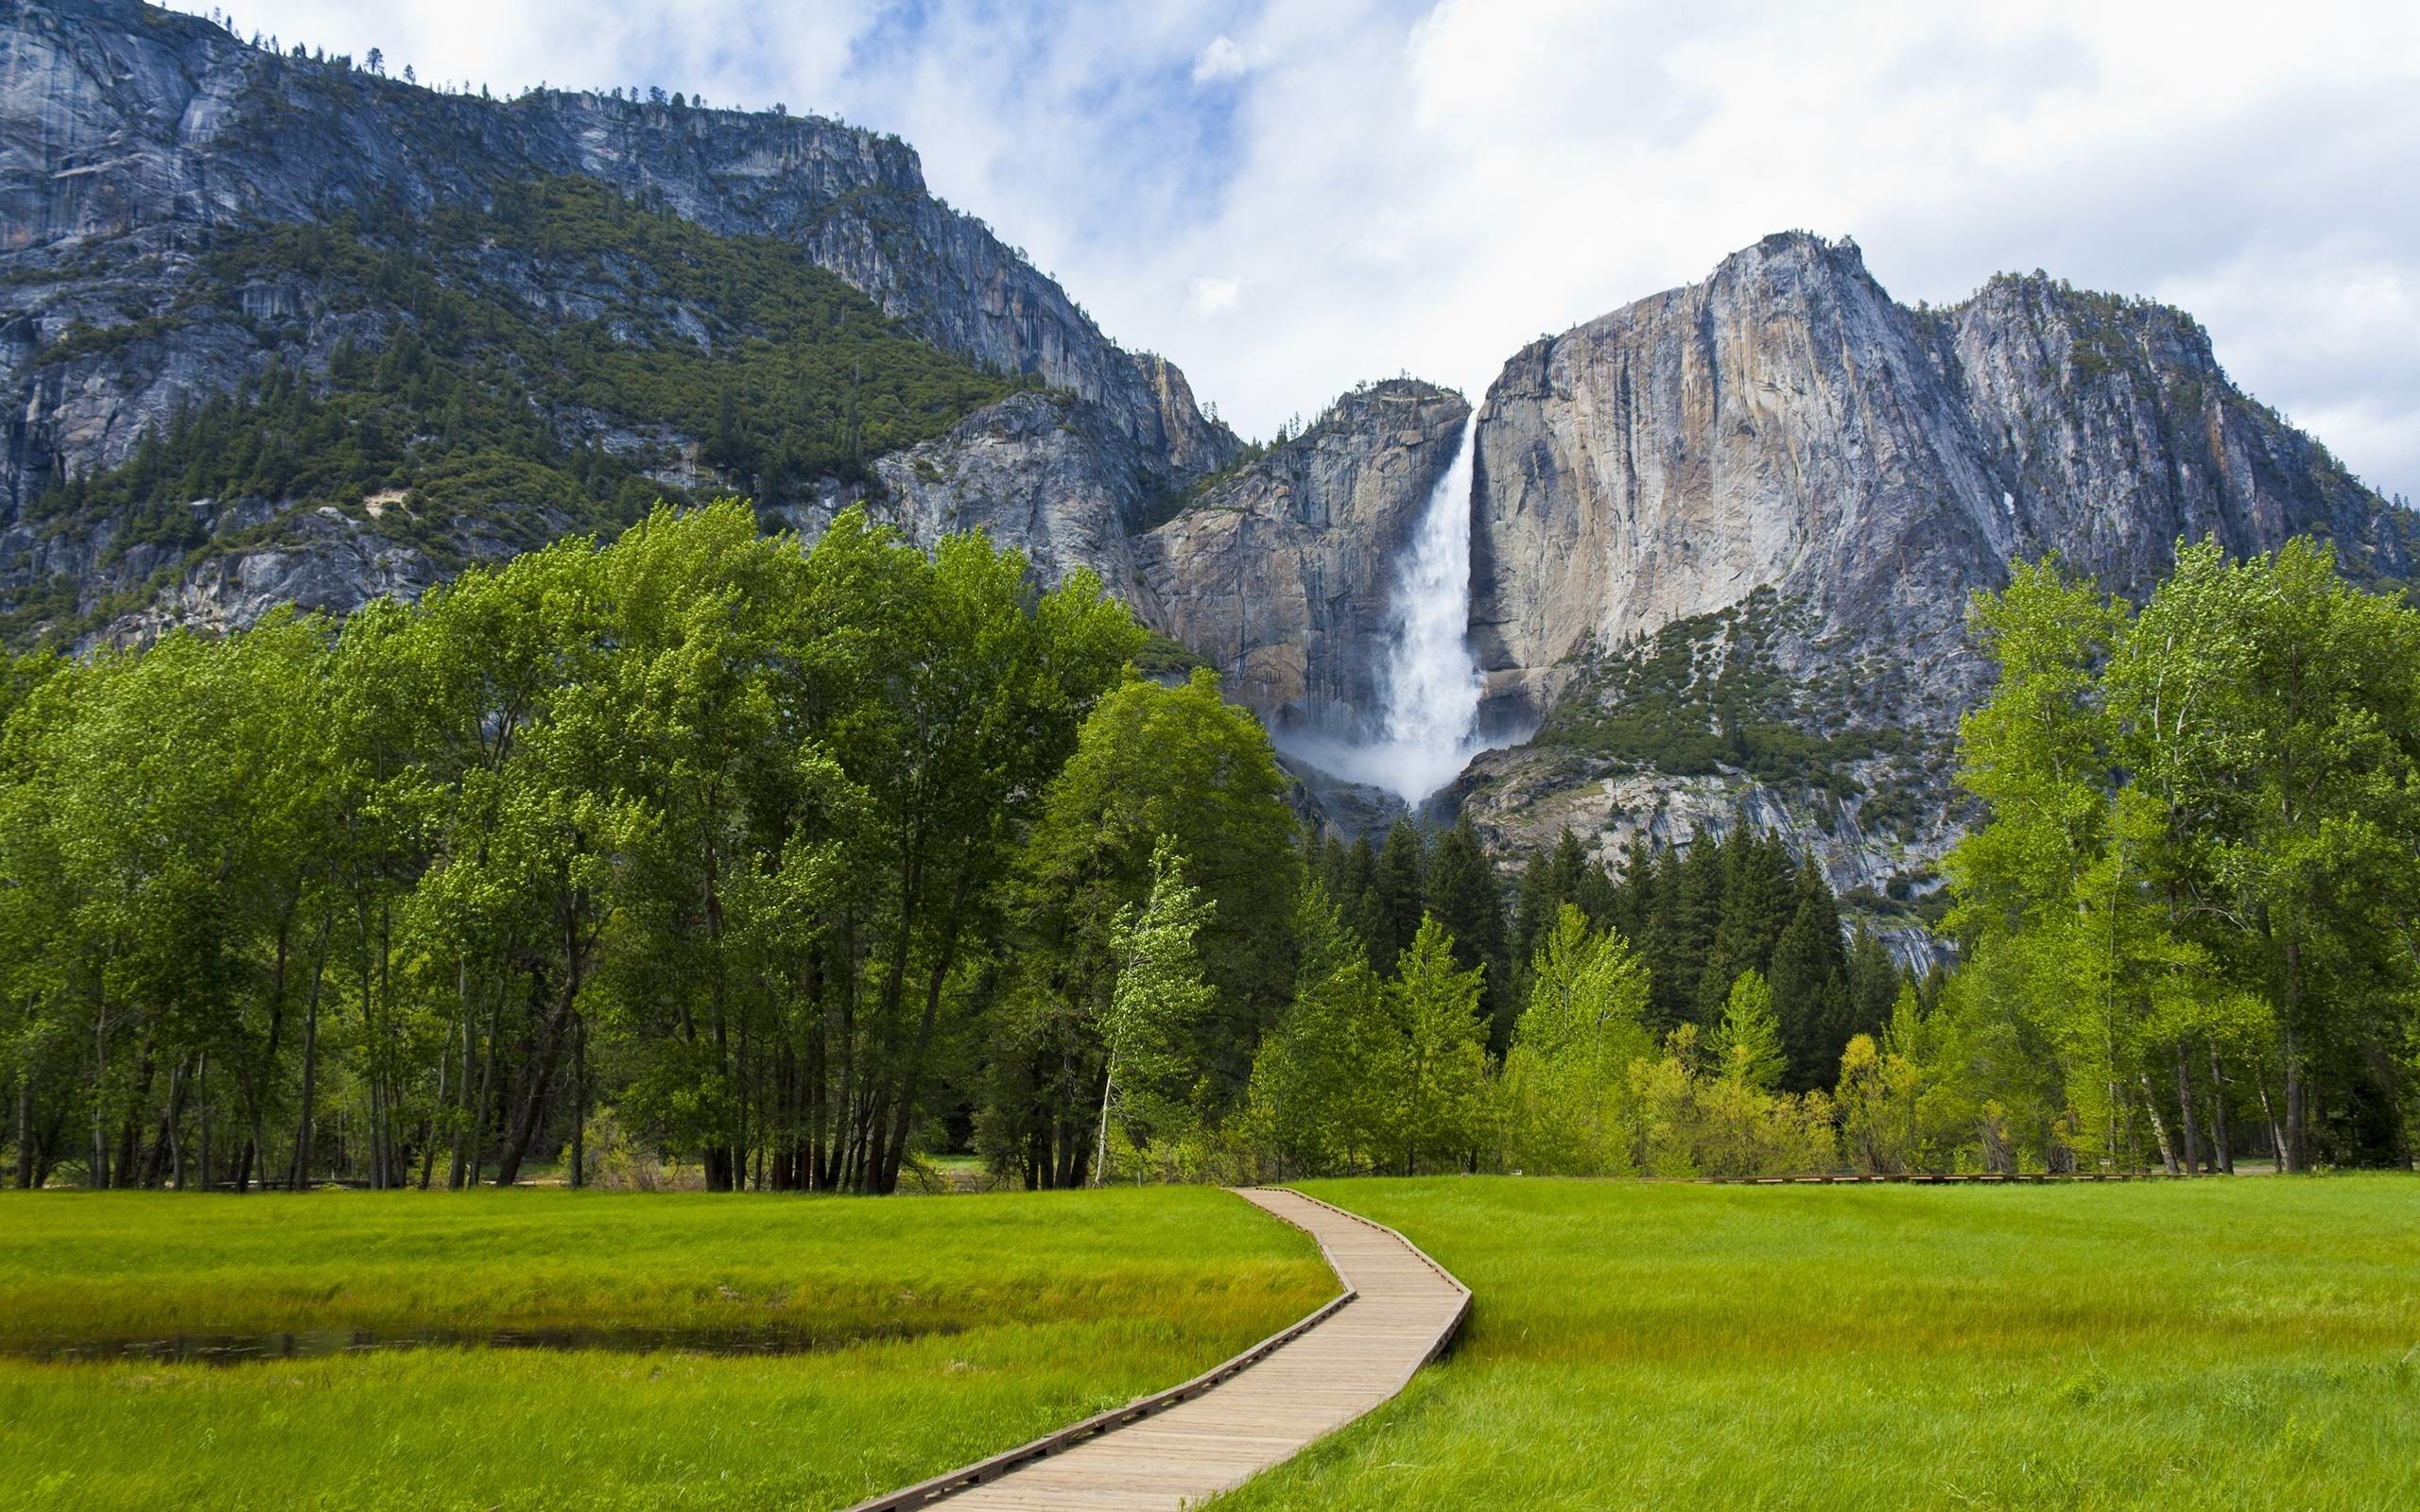 2560x1600 Yosemite Wallpapers - Full HD wallpaper search - page 2